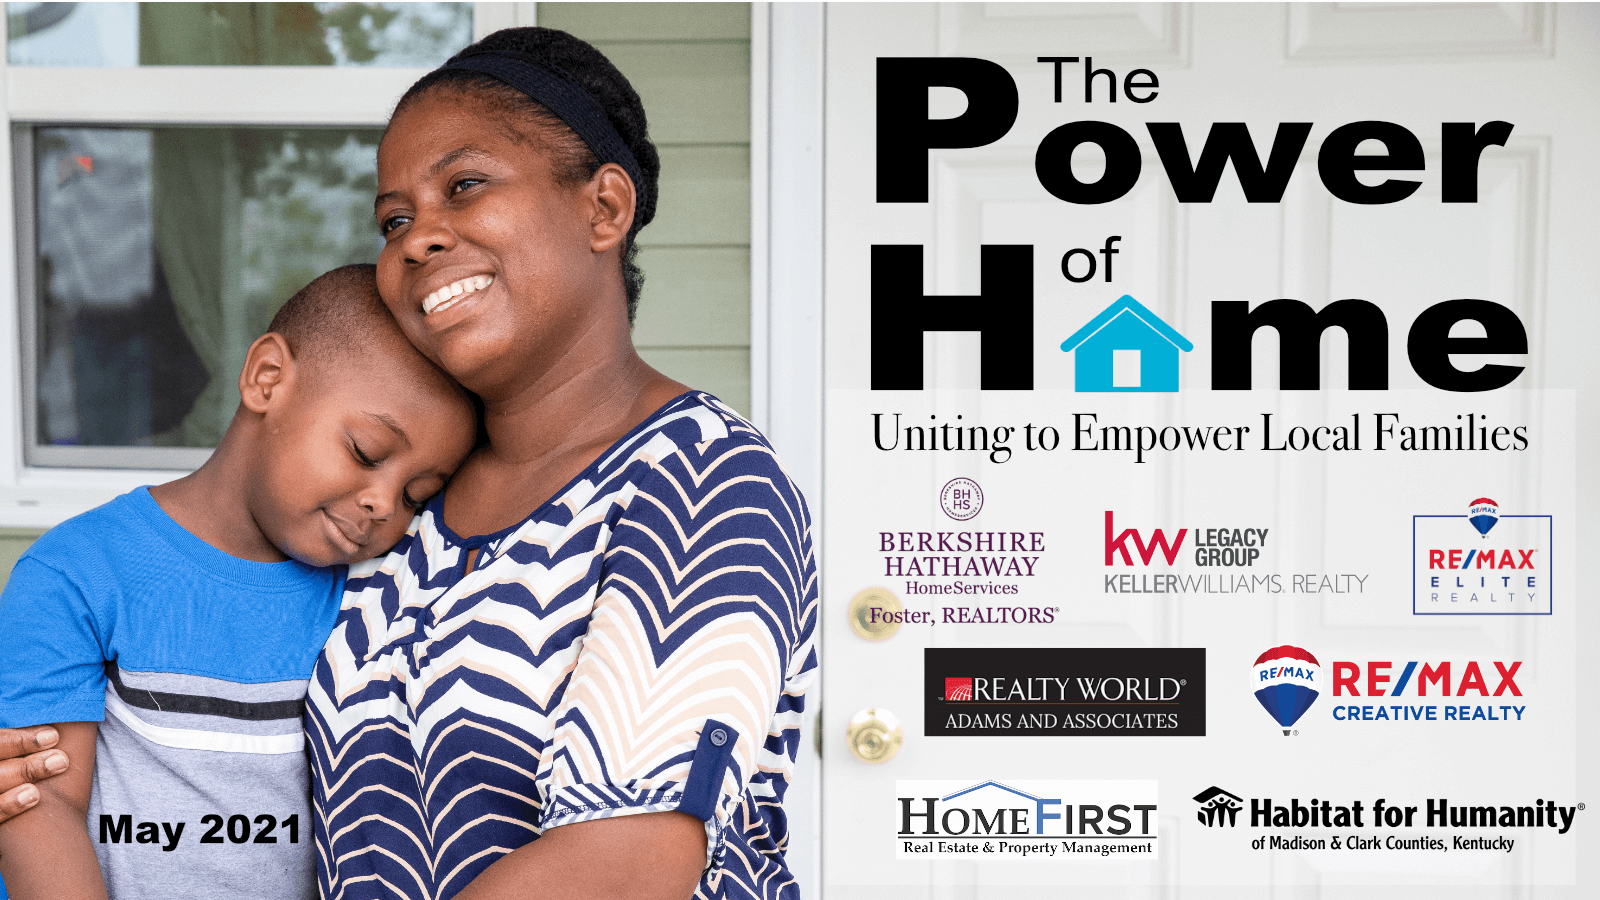 The Power of Home: Uniting to Empower Local Families